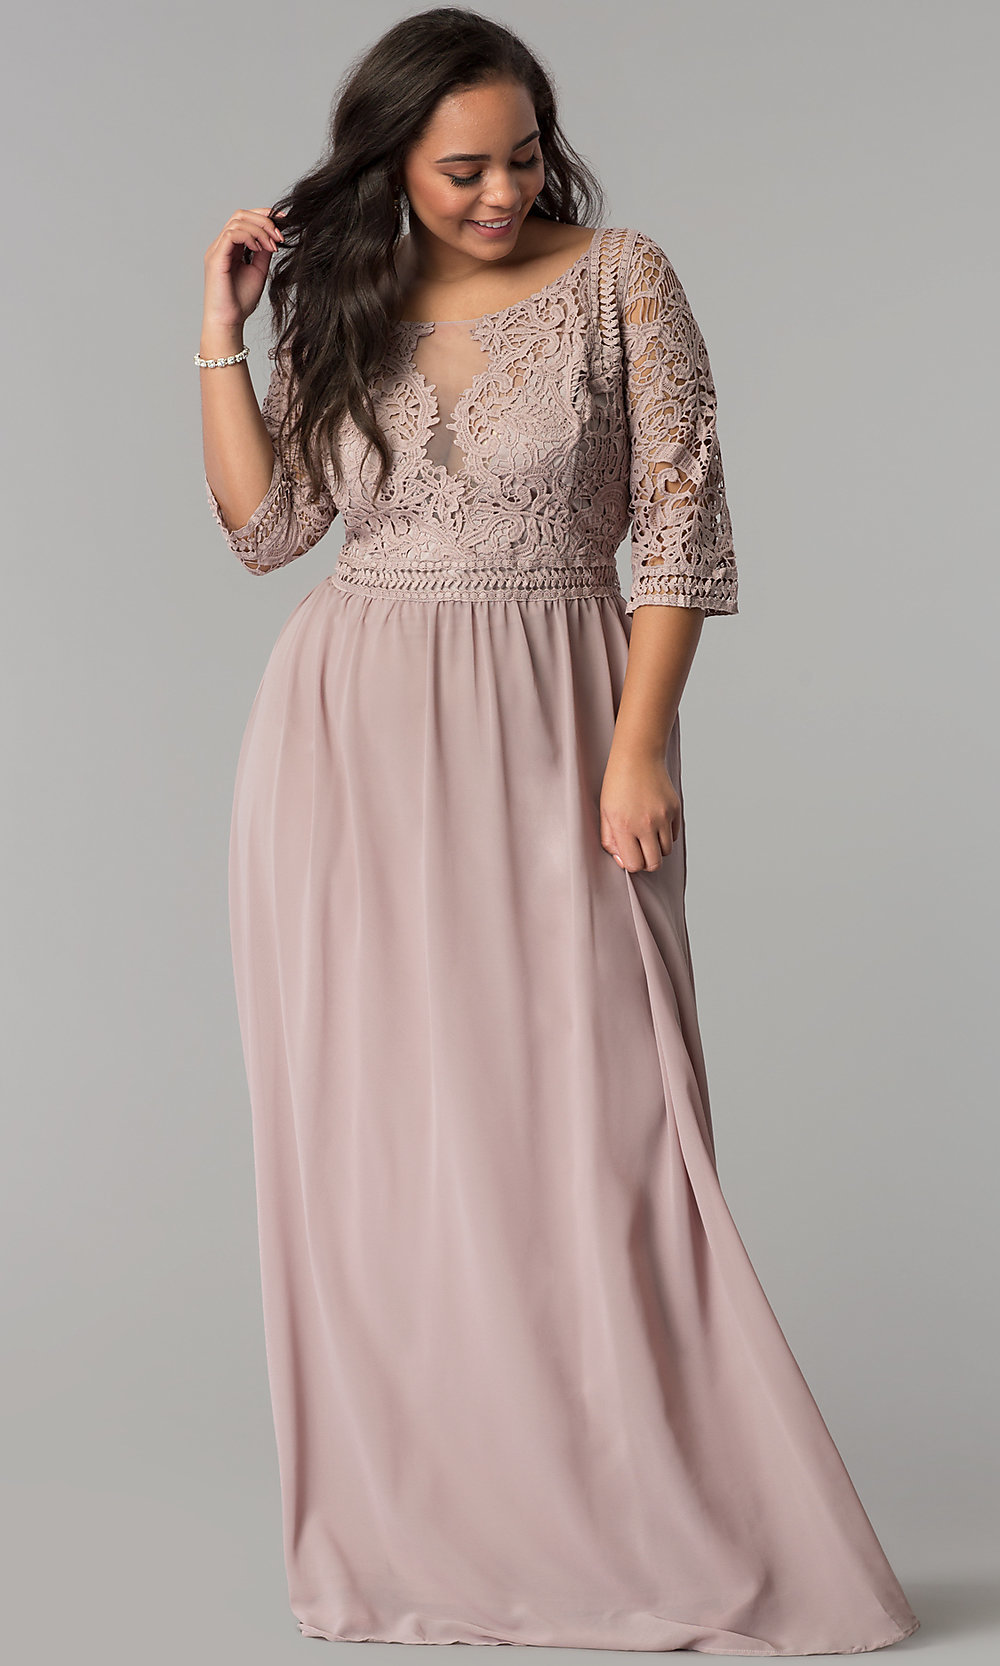 Chiffon Plus-Size Prom Dress with Sleeves - PromGirl